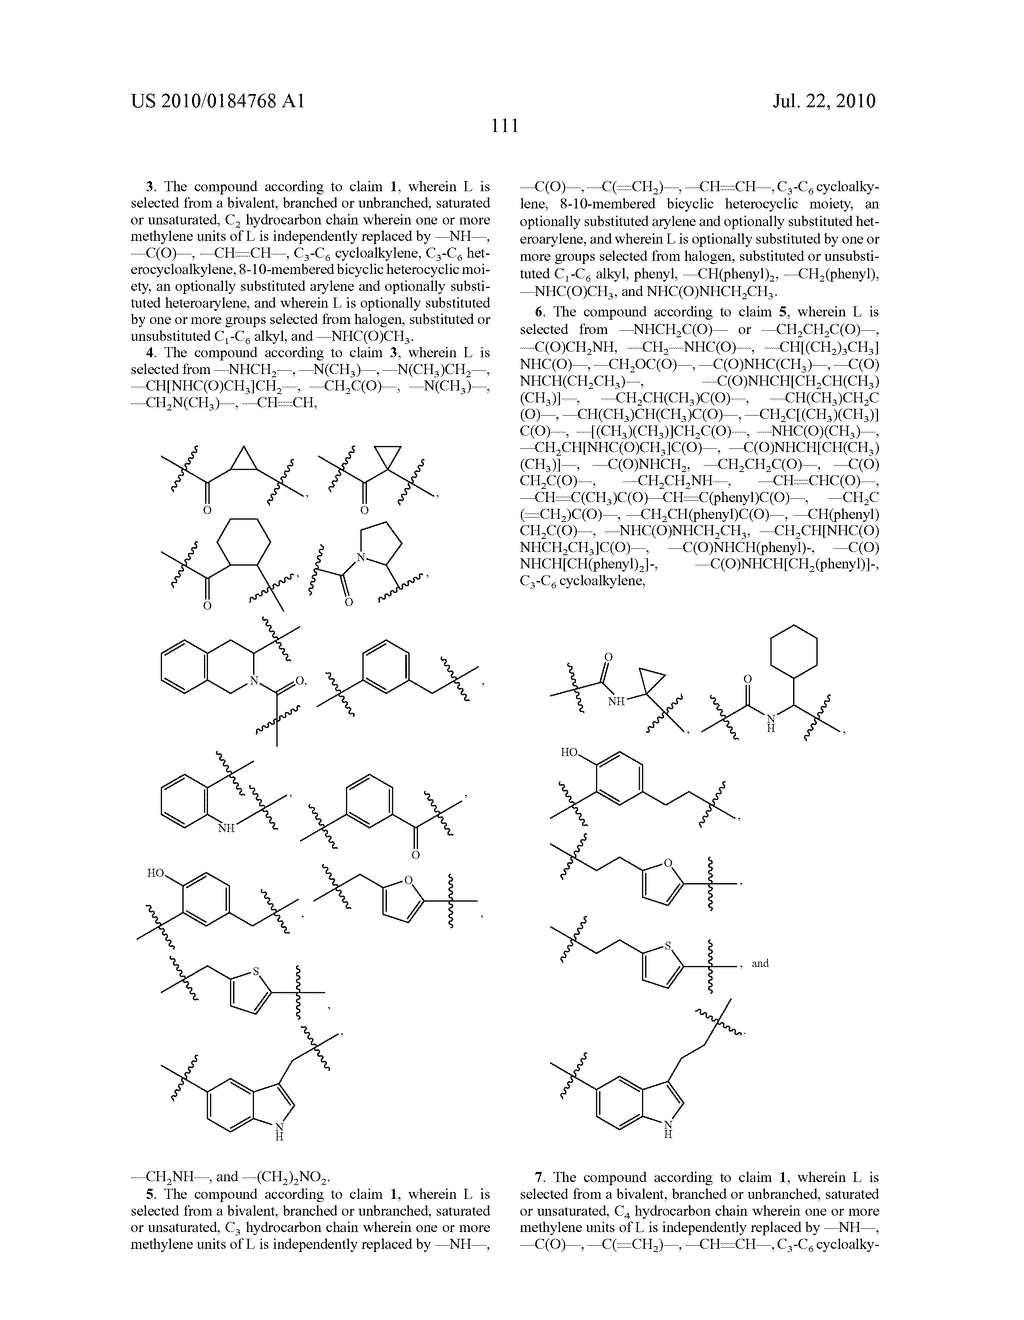 Isoprenyl Compounds and Methods Thereof - diagram, schematic, and image 126